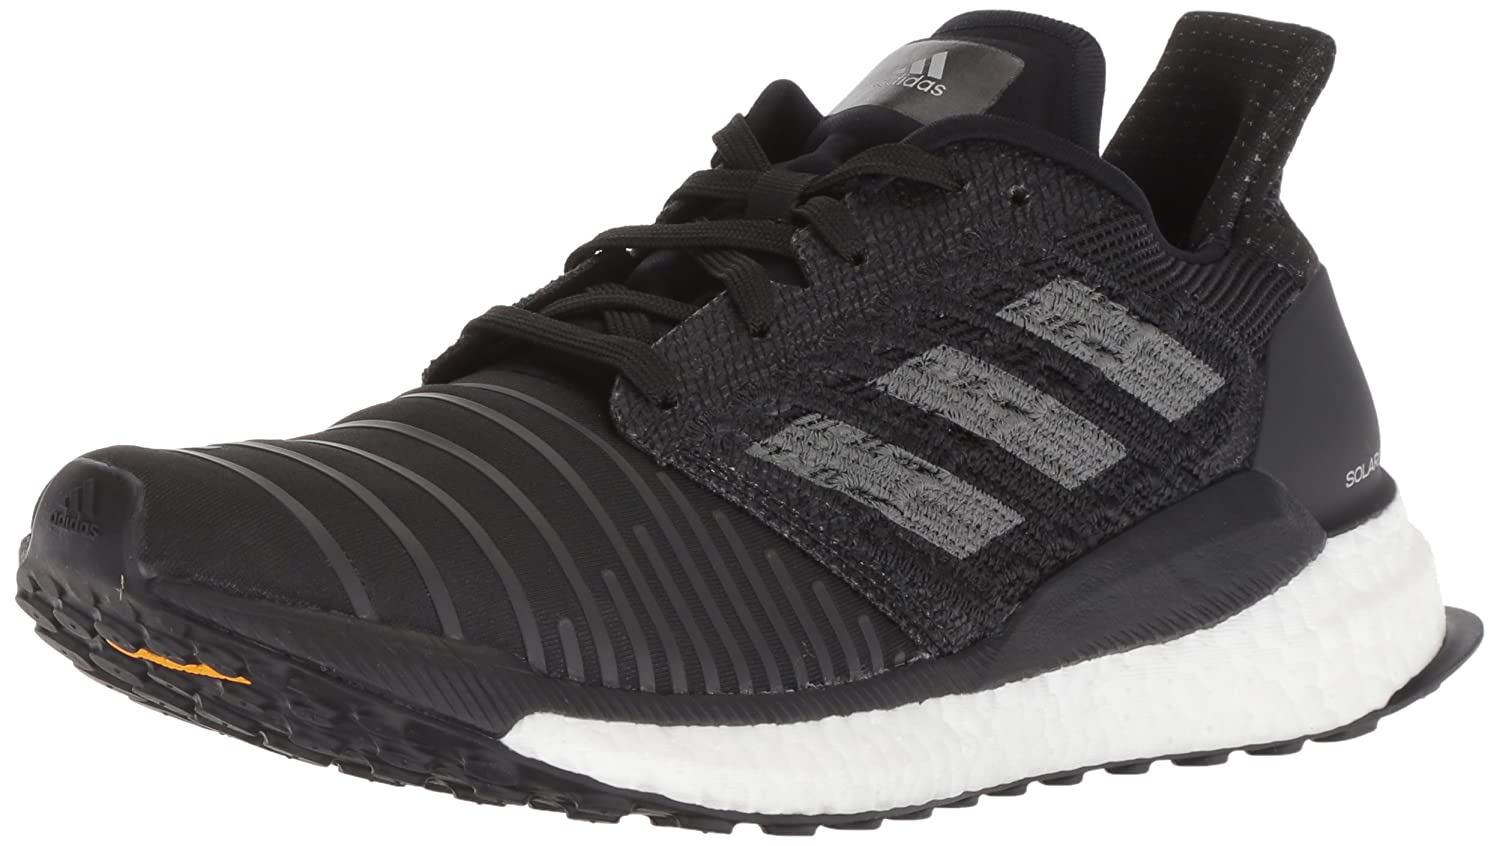 adidas Women's Solar Boost Running Shoe B0778X1SVZ 5 B(M) US|Black/Grey/White